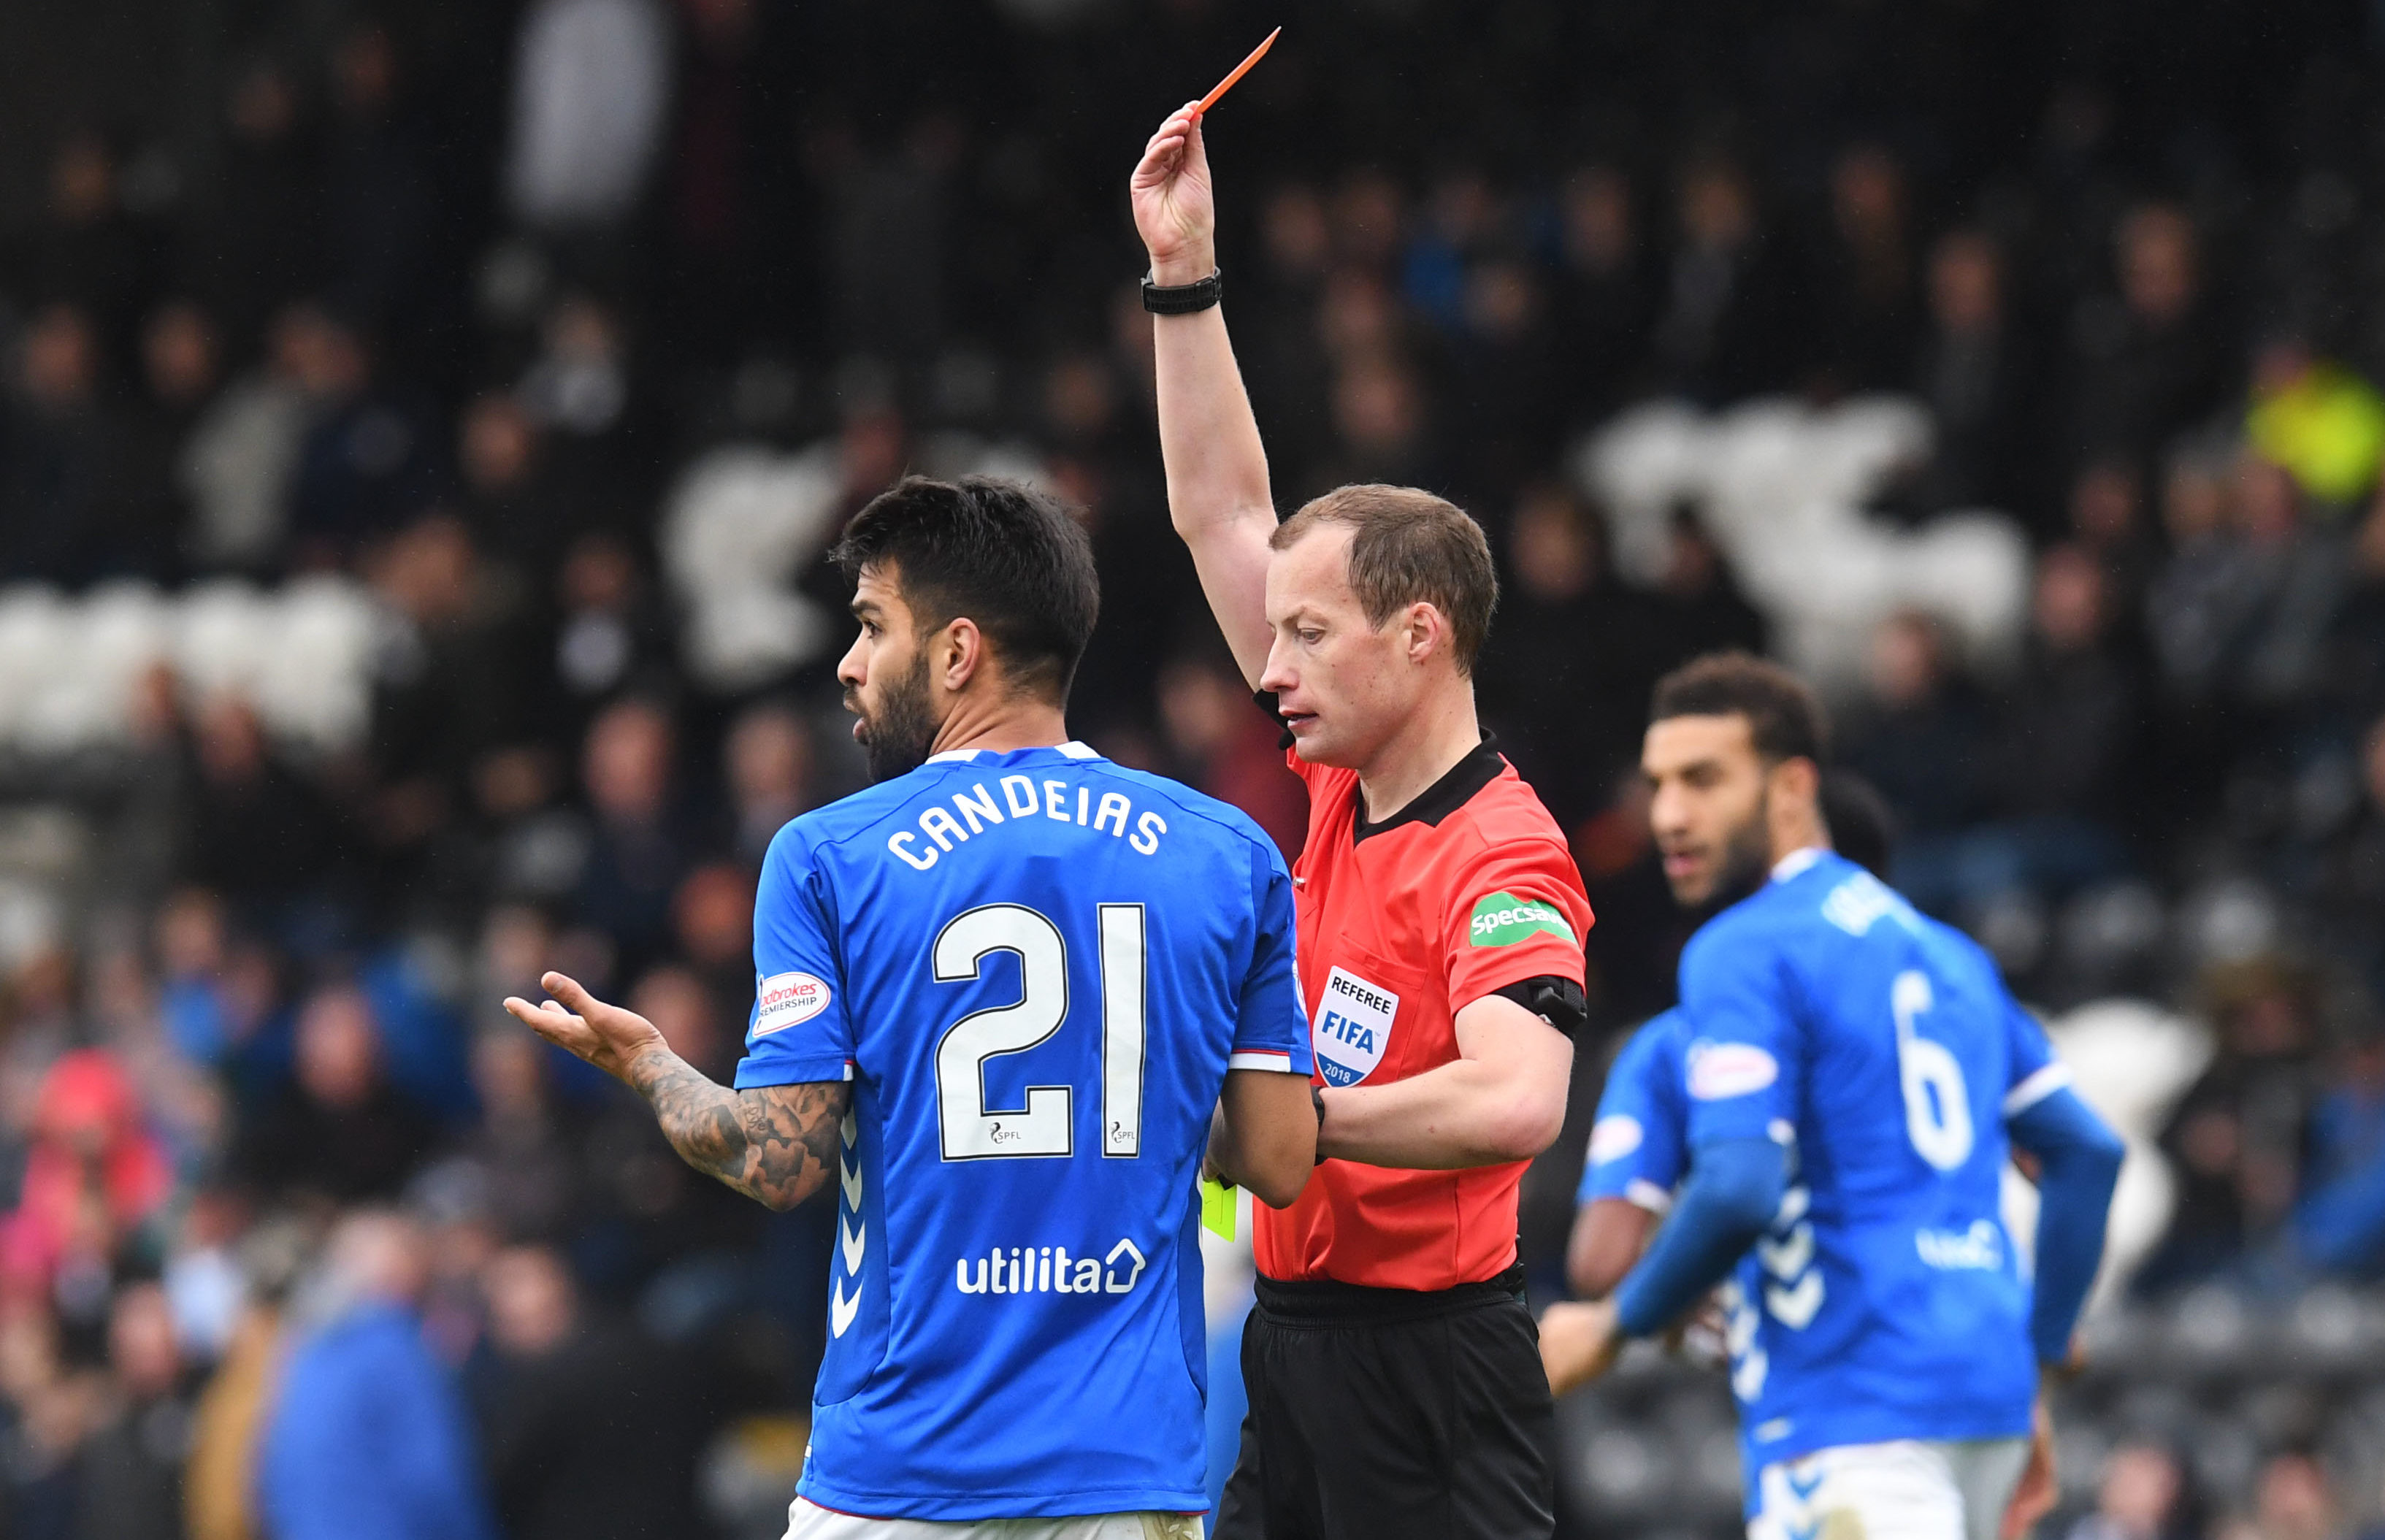 Rangers were unhappy with a second yellow card handed out to Daniel Candeias in their win over St Mirren (SNS Group / Craig Foy)